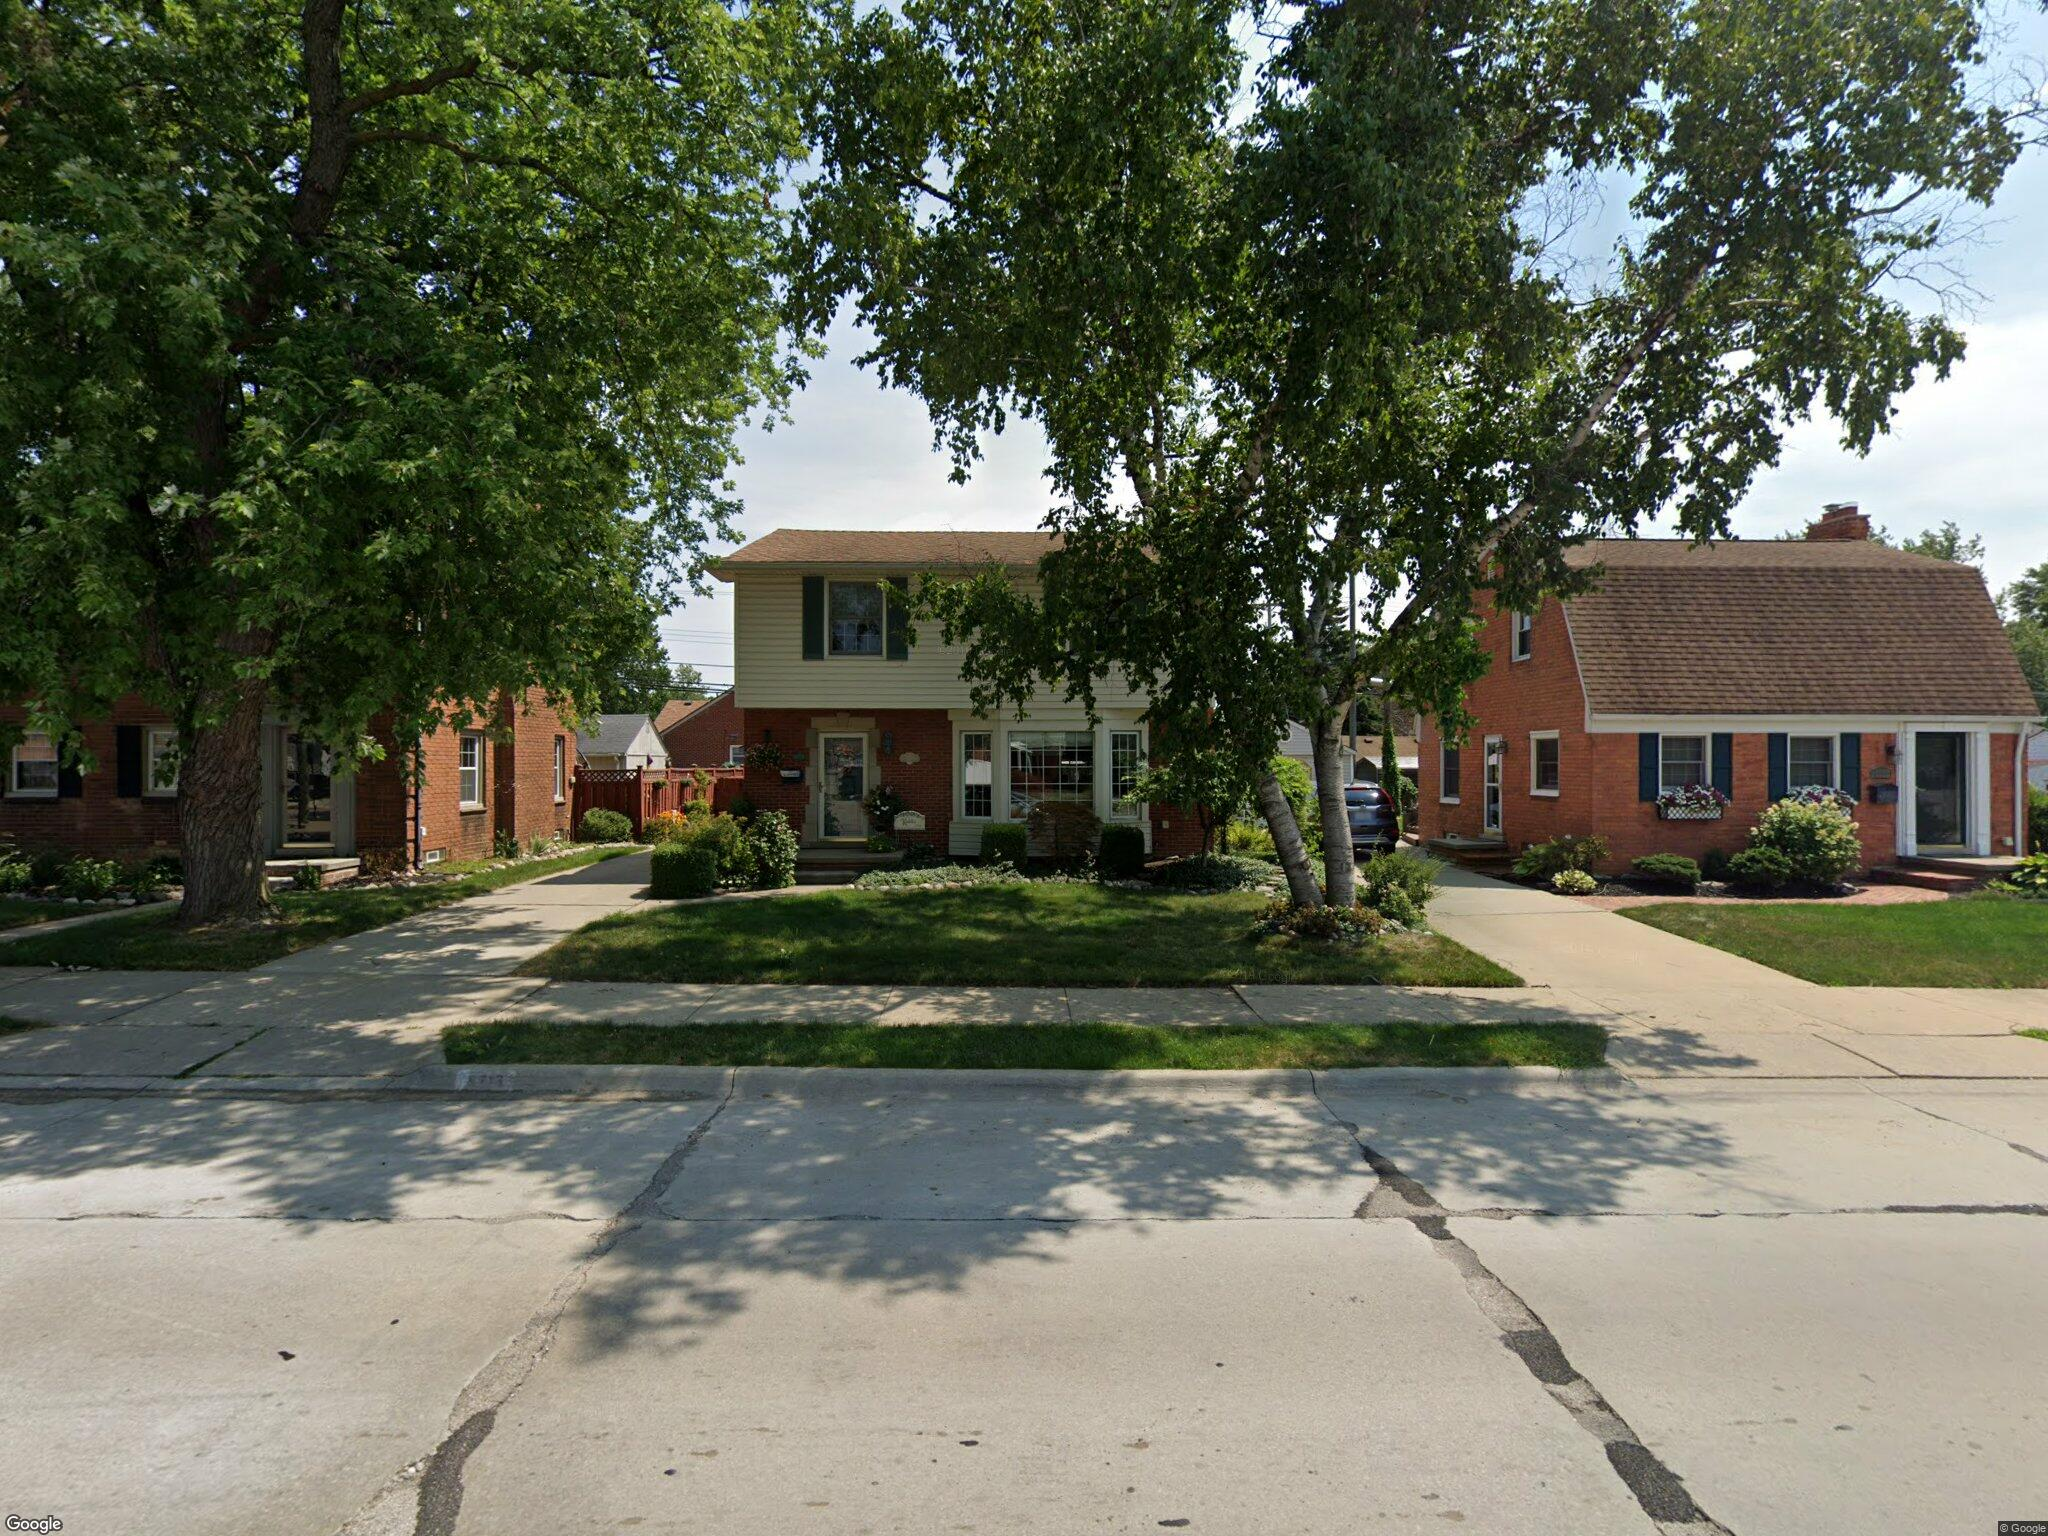 6713 Rosedale Blvd, Allen Park, MI 48101 - Foreclosure | Trulia